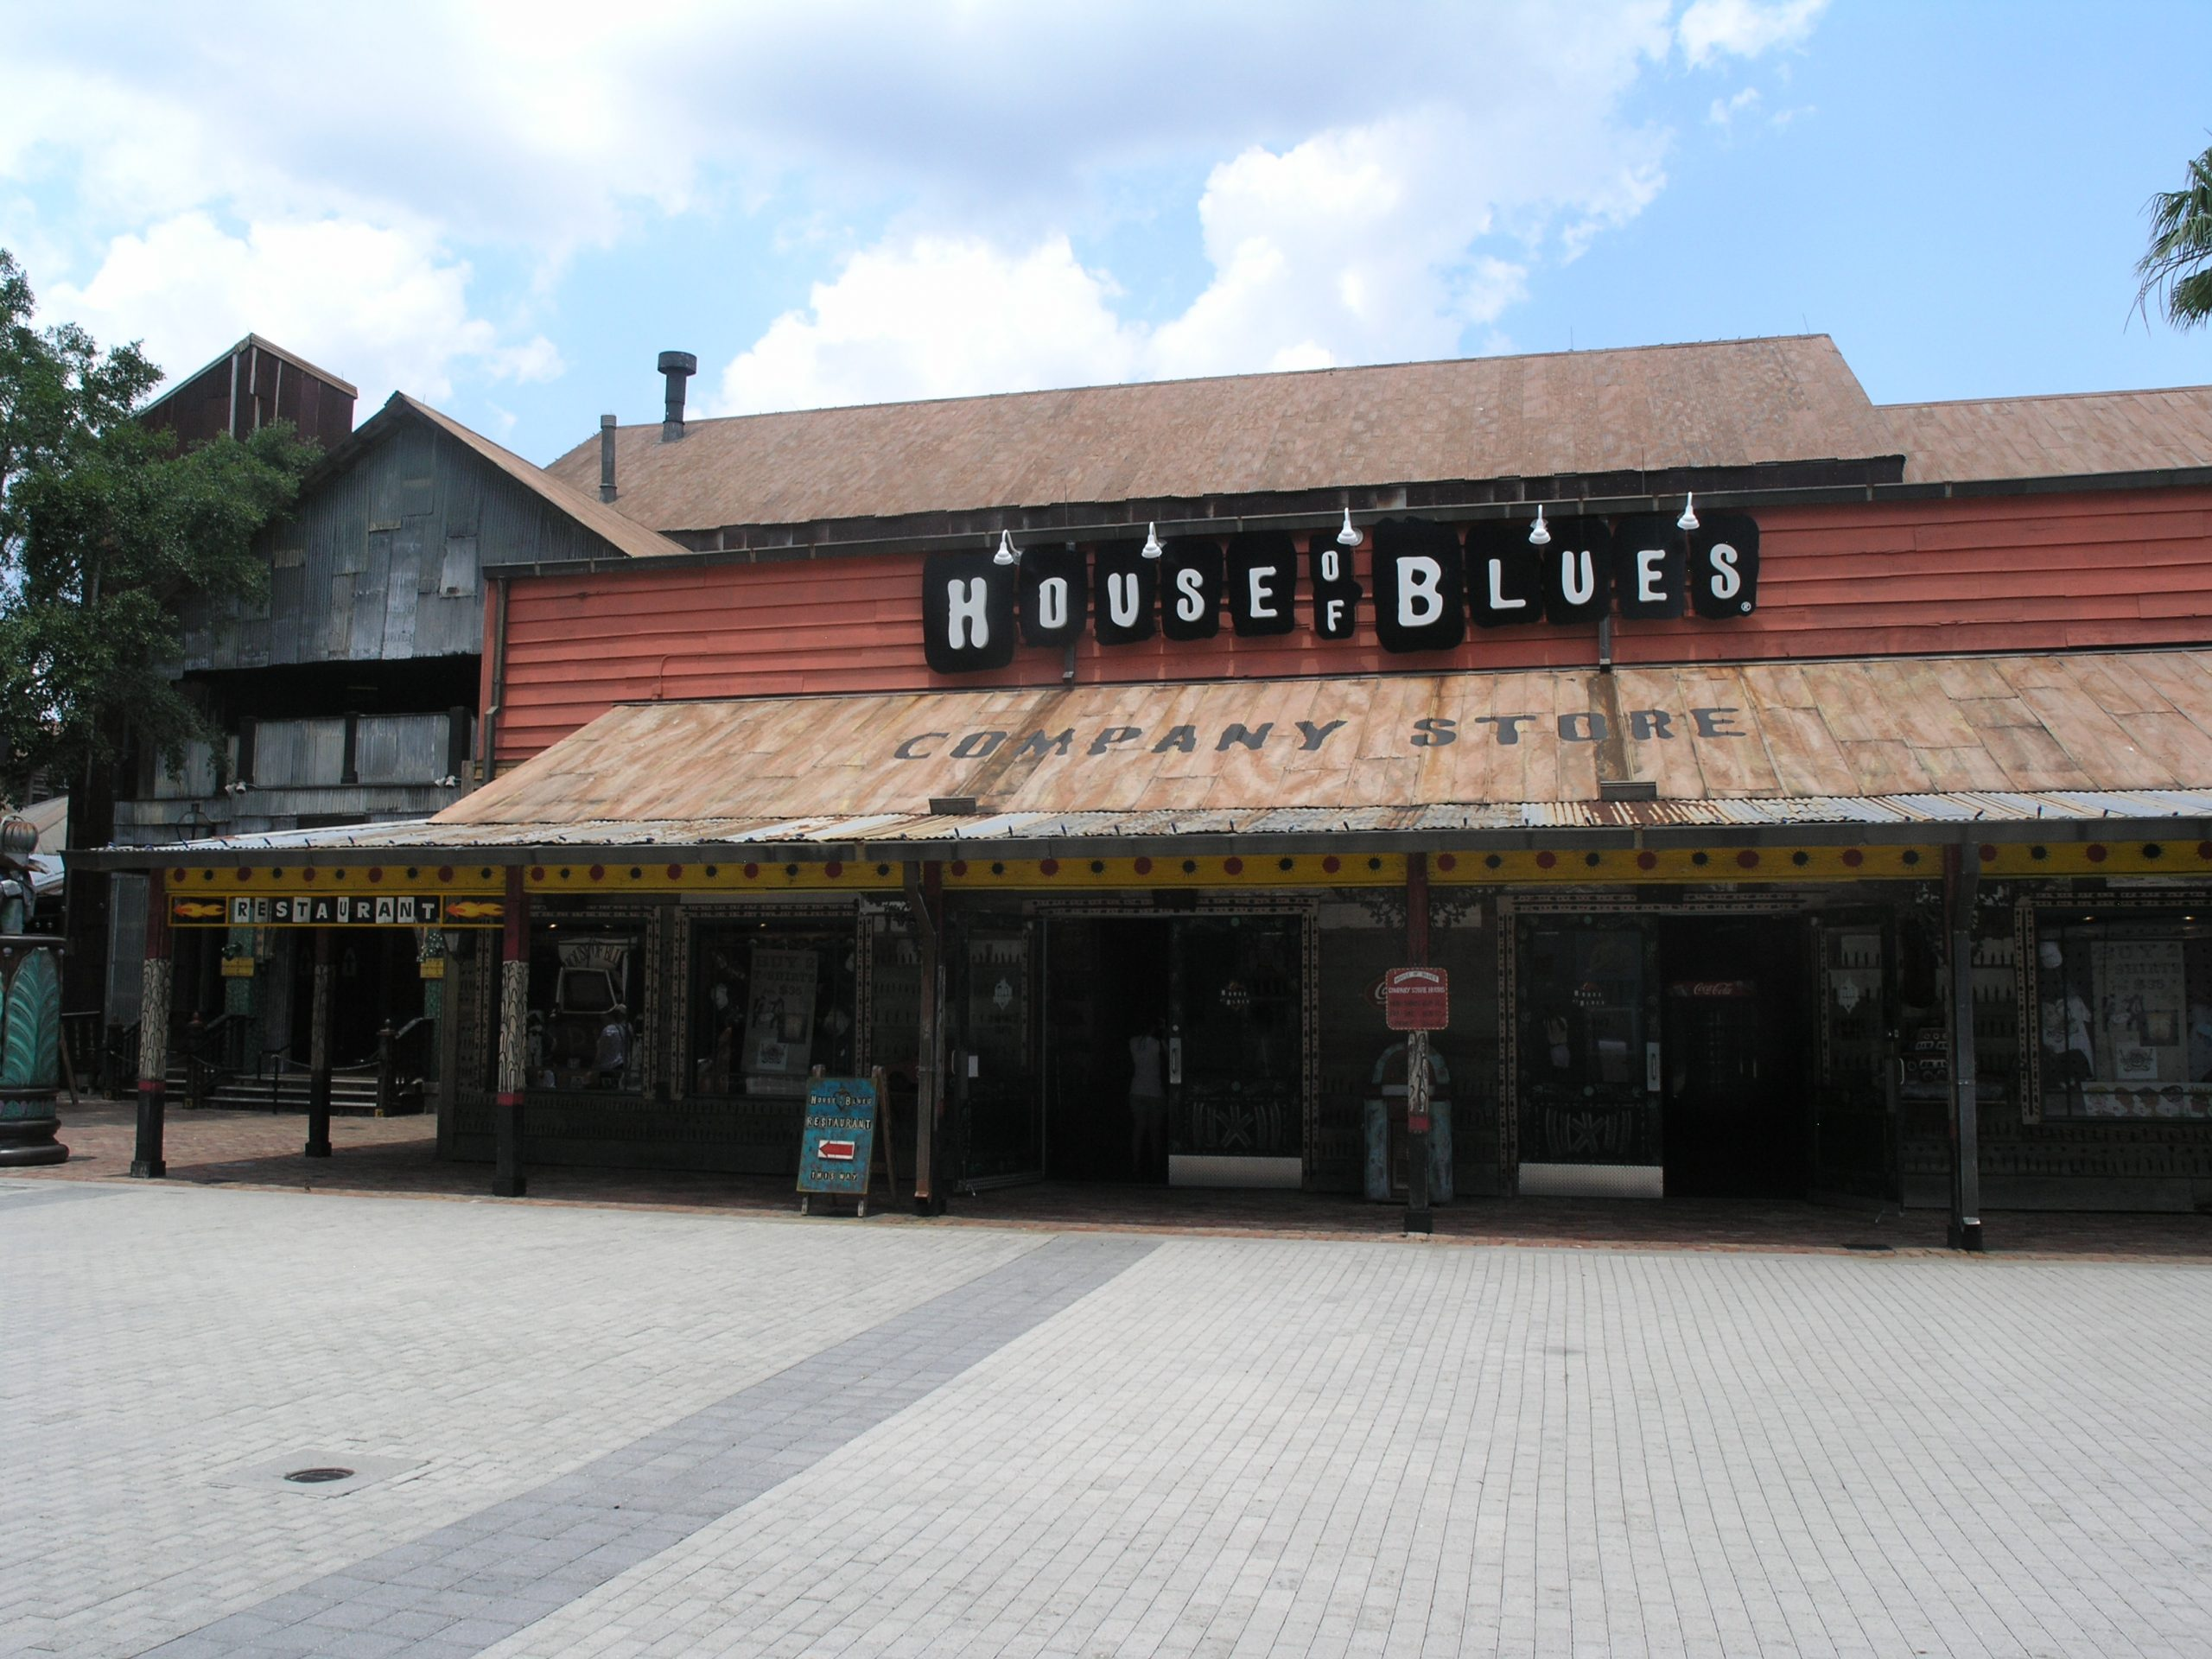 House of Blues - Things To Do In Orlando Besides Theme Parks